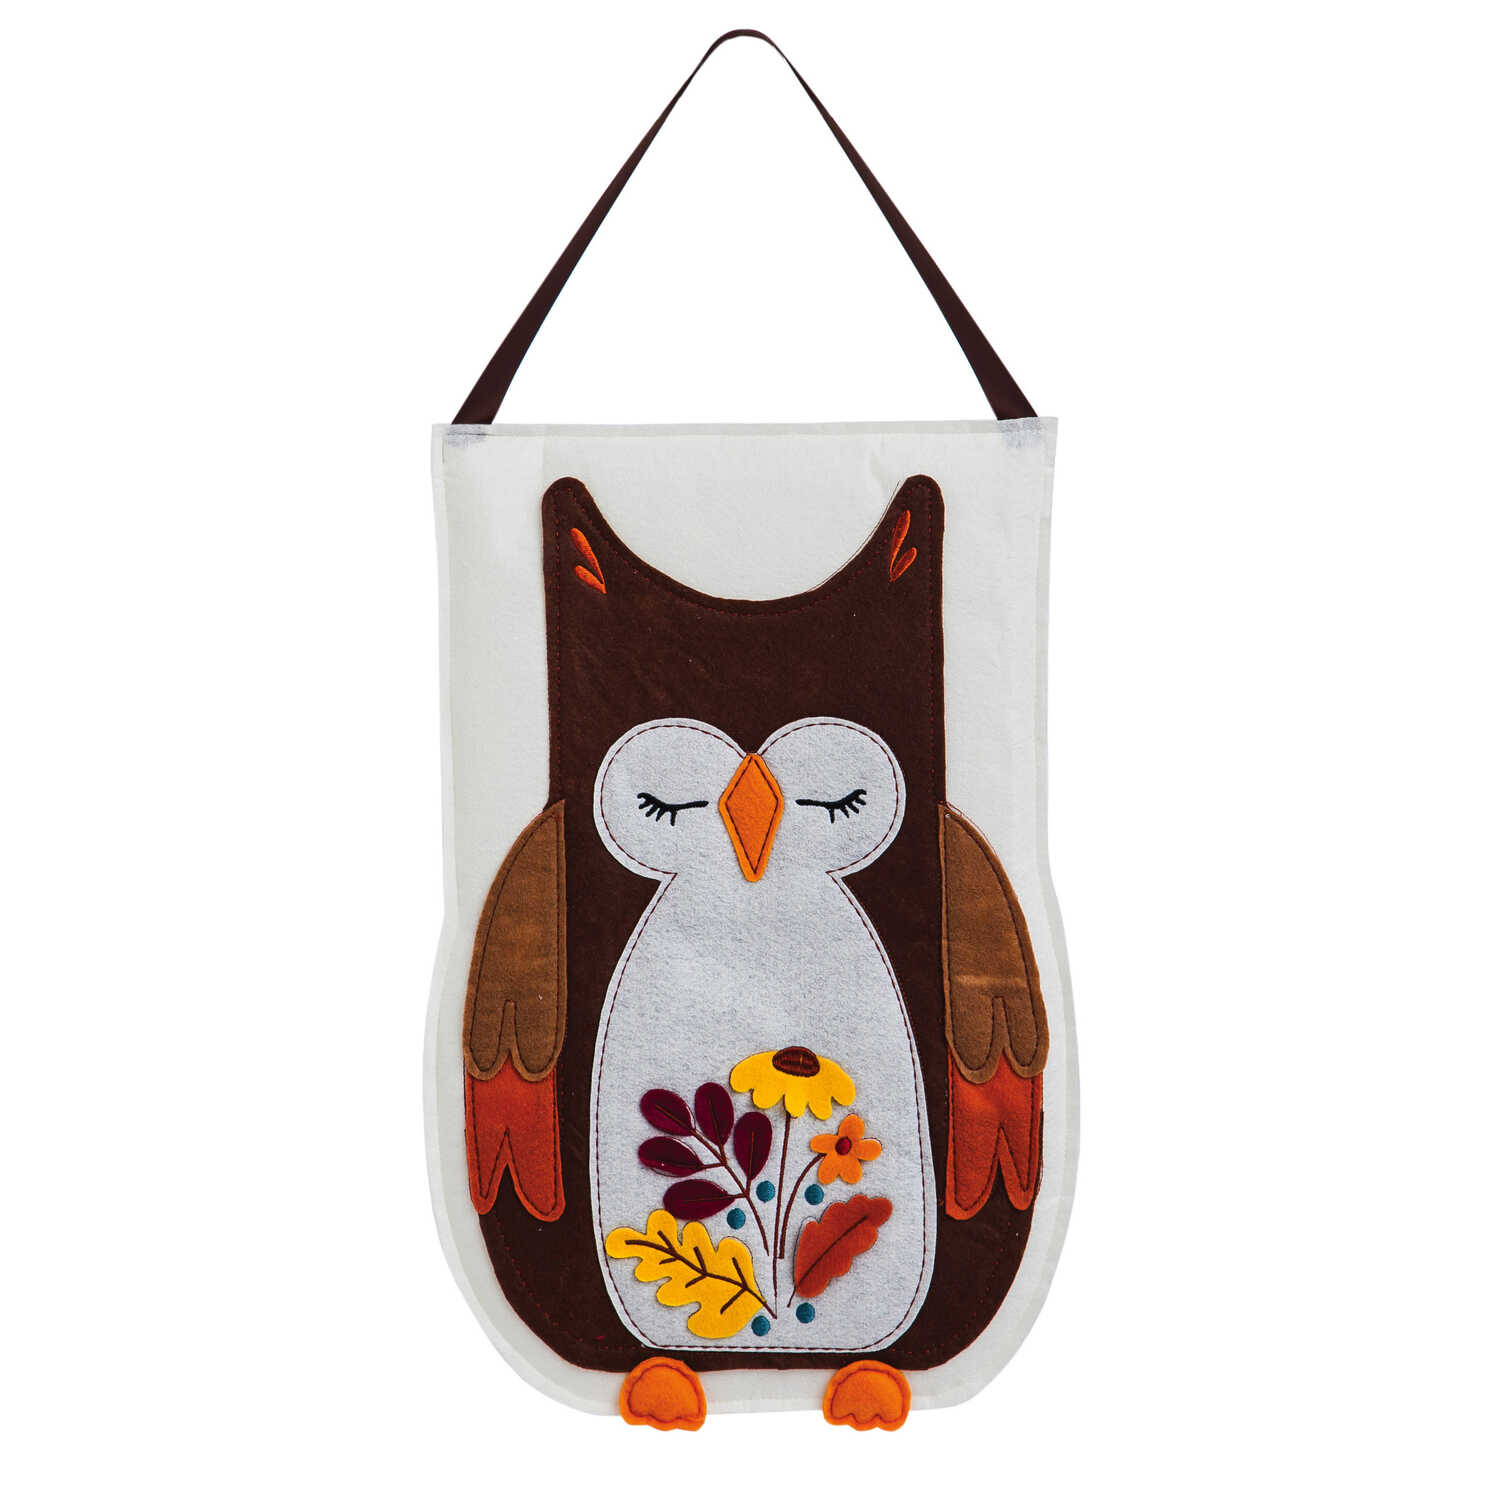 Evergreen  Owl  Fall Decoration  20.75 in. H x 13.75 in. W x 13-3/4 in. L 1 pk